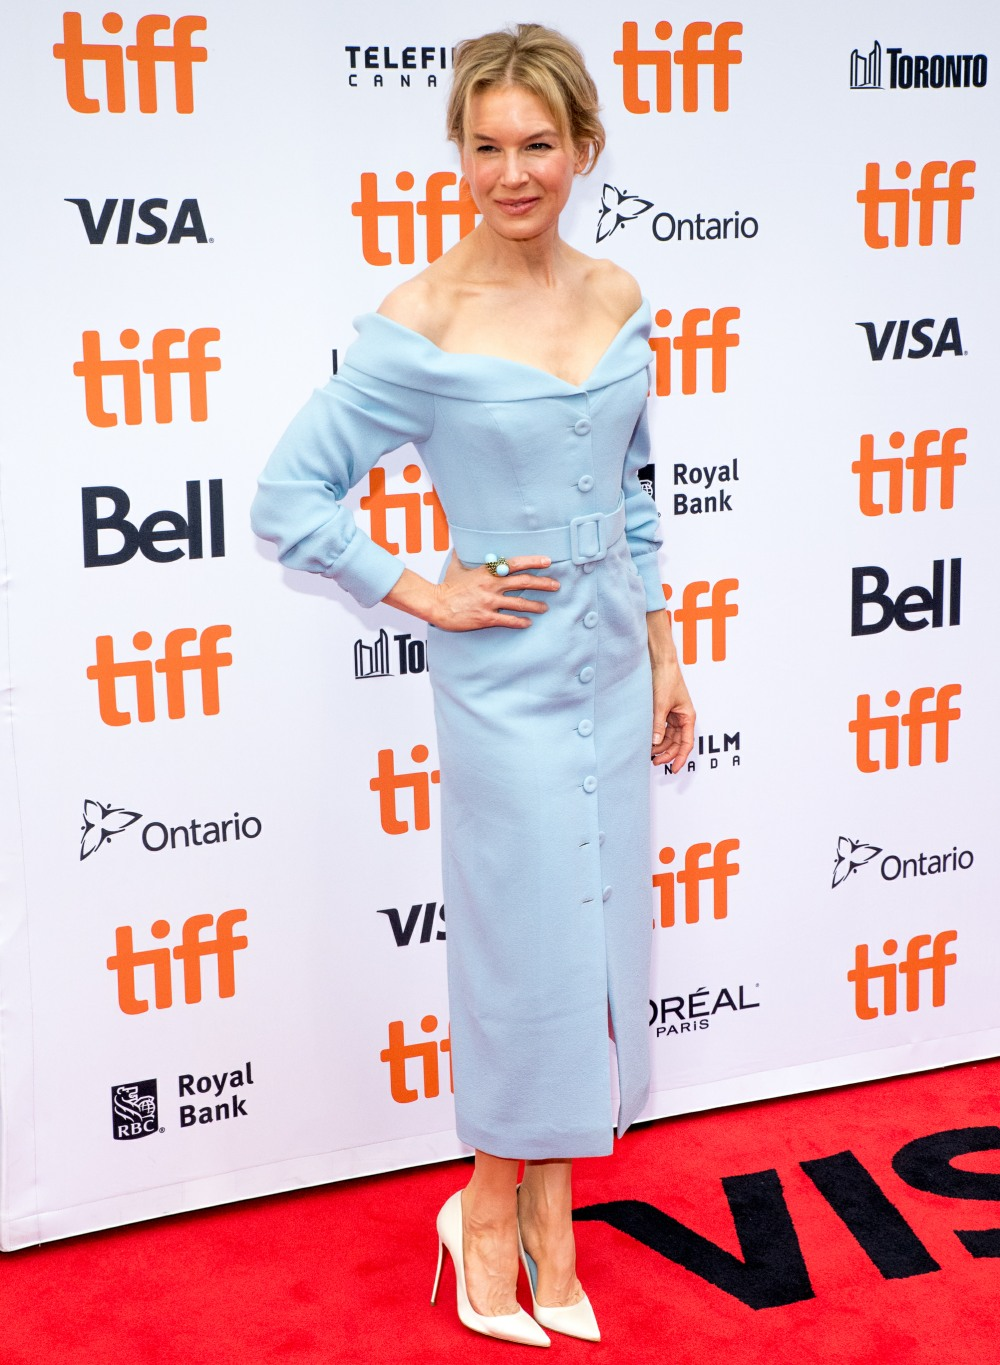 Judy red carpet premiere at TIFF 2019